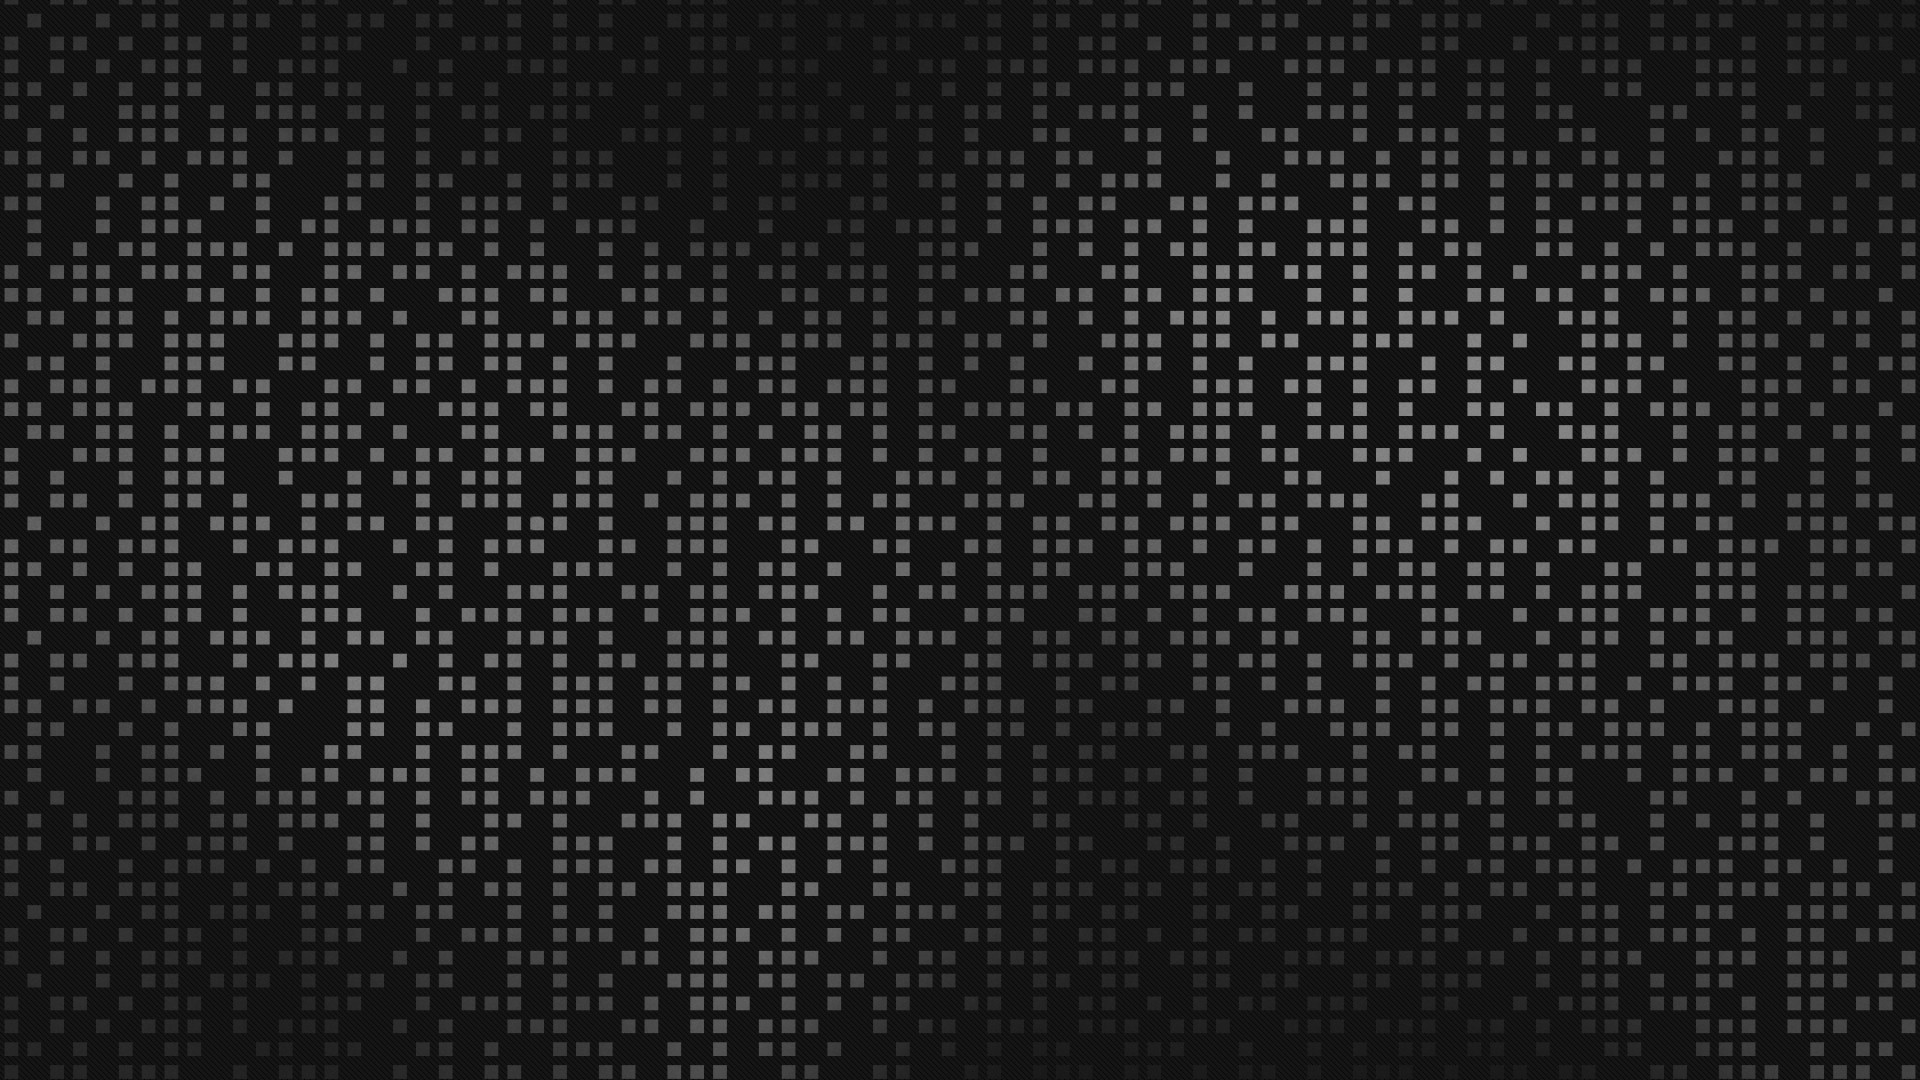 texture wallpapers for mobiles: Texture HD Wallpapers (75+ Images